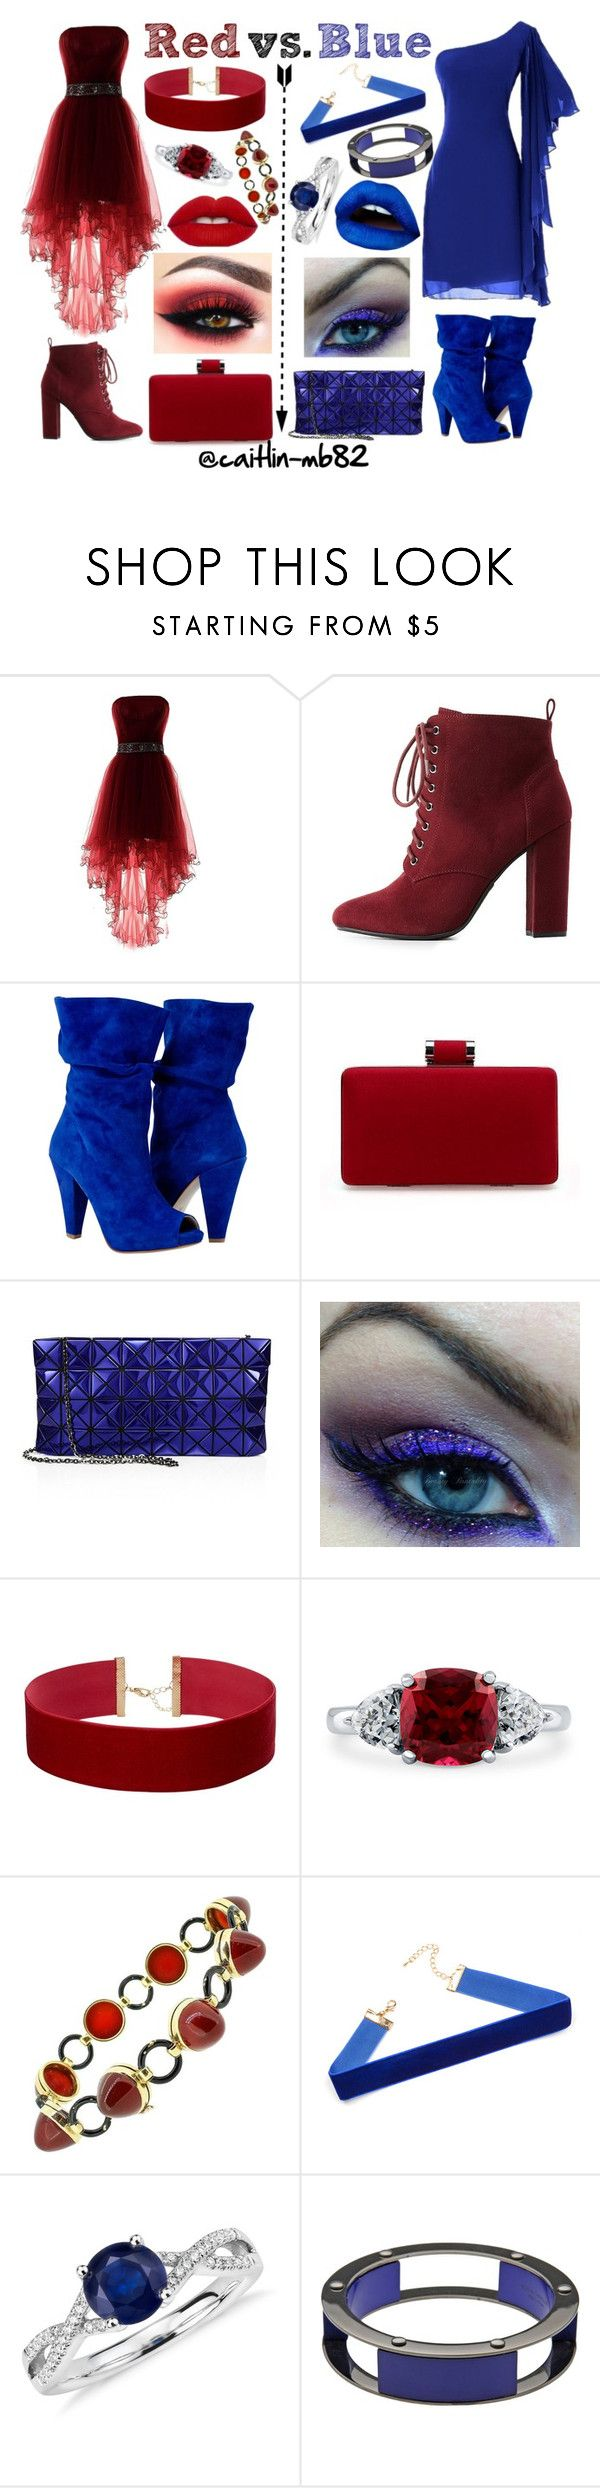 """""""Red vs. Blue"""" by caitlin-mb82 on Polyvore featuring Charlotte Russe, Bao Bao by Issey Miyake, BERRICLE, Blue Nile and Erika Cavallini Semi-Couture"""